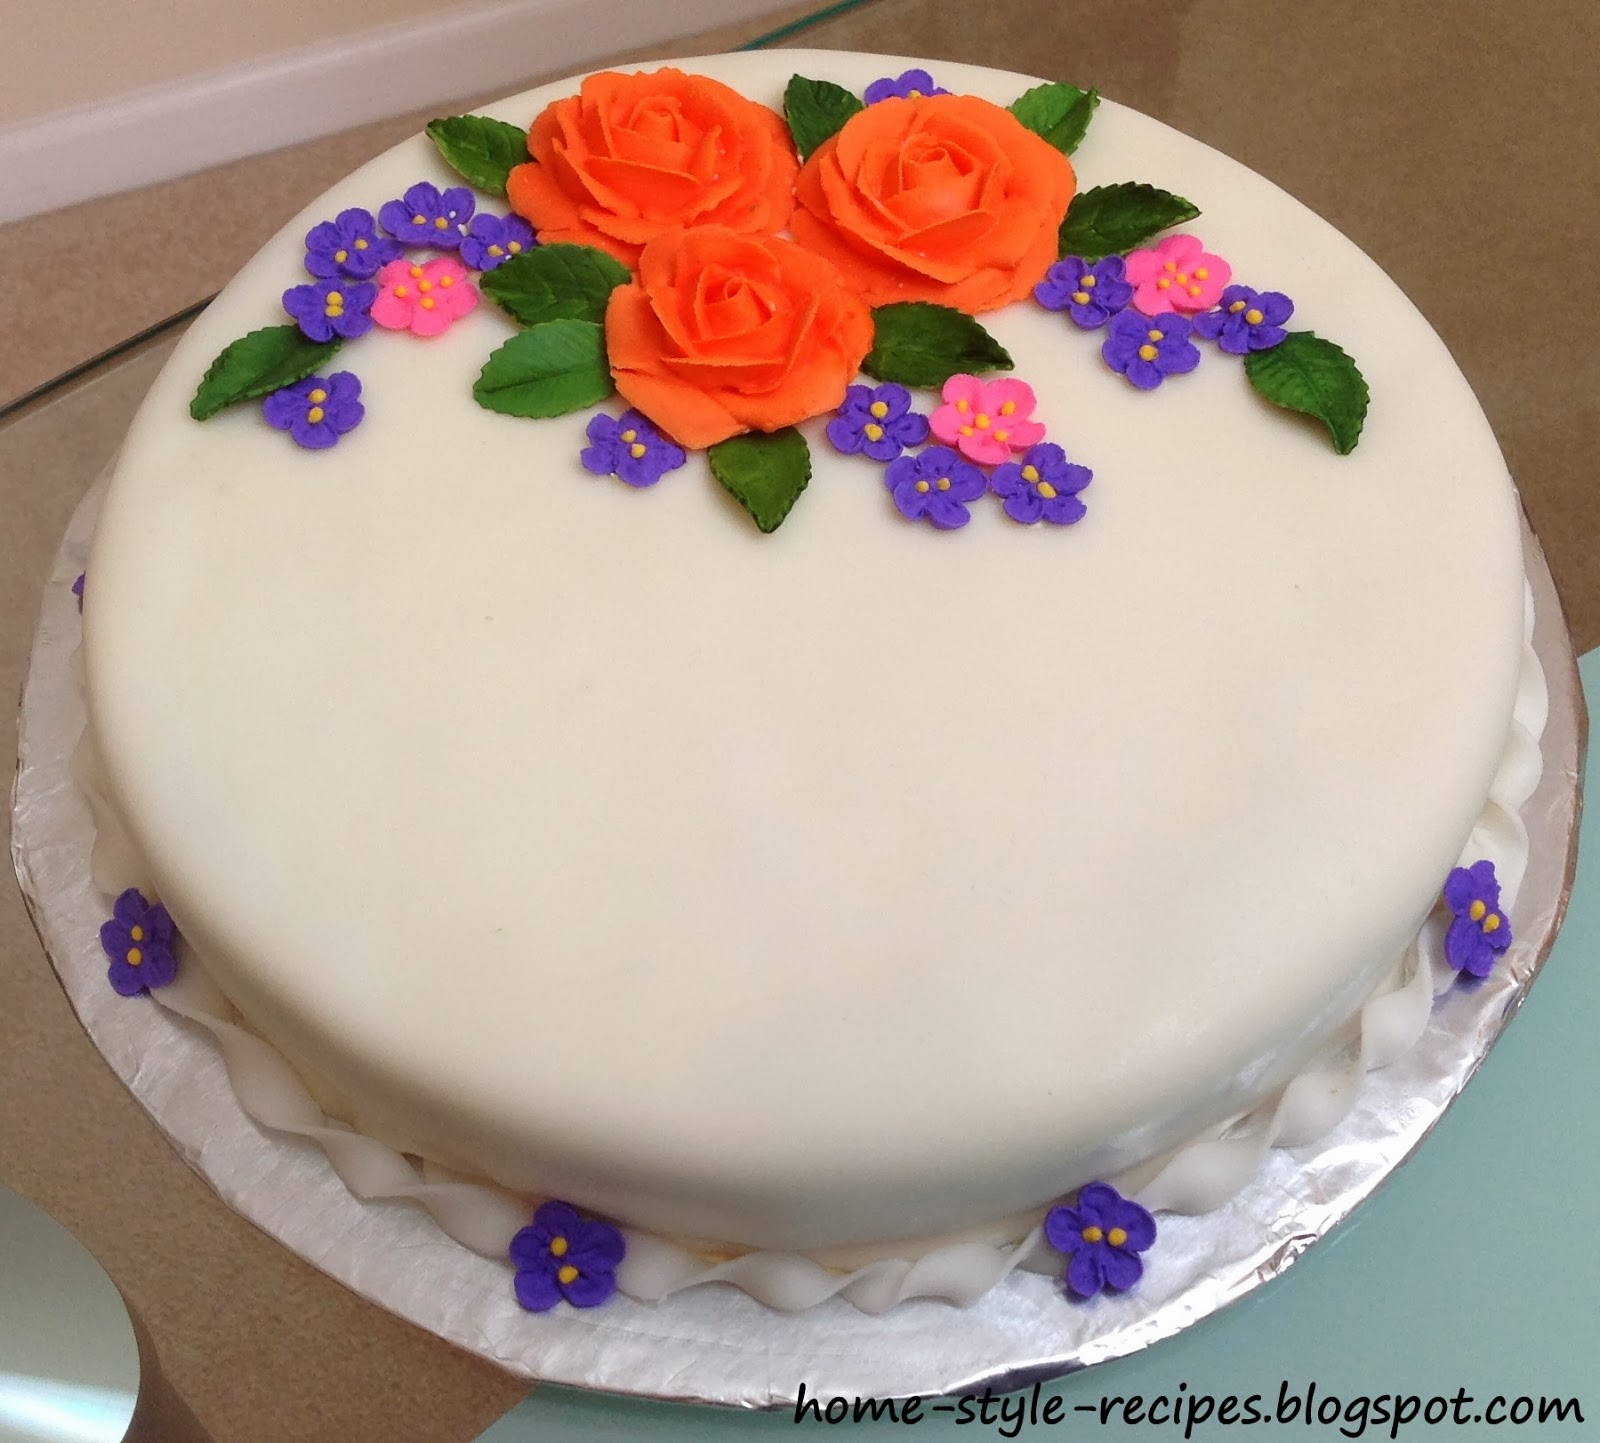 Cake With Royal Icing Flowers : Share-A-Recipe: Cake with Royal Icing flowers